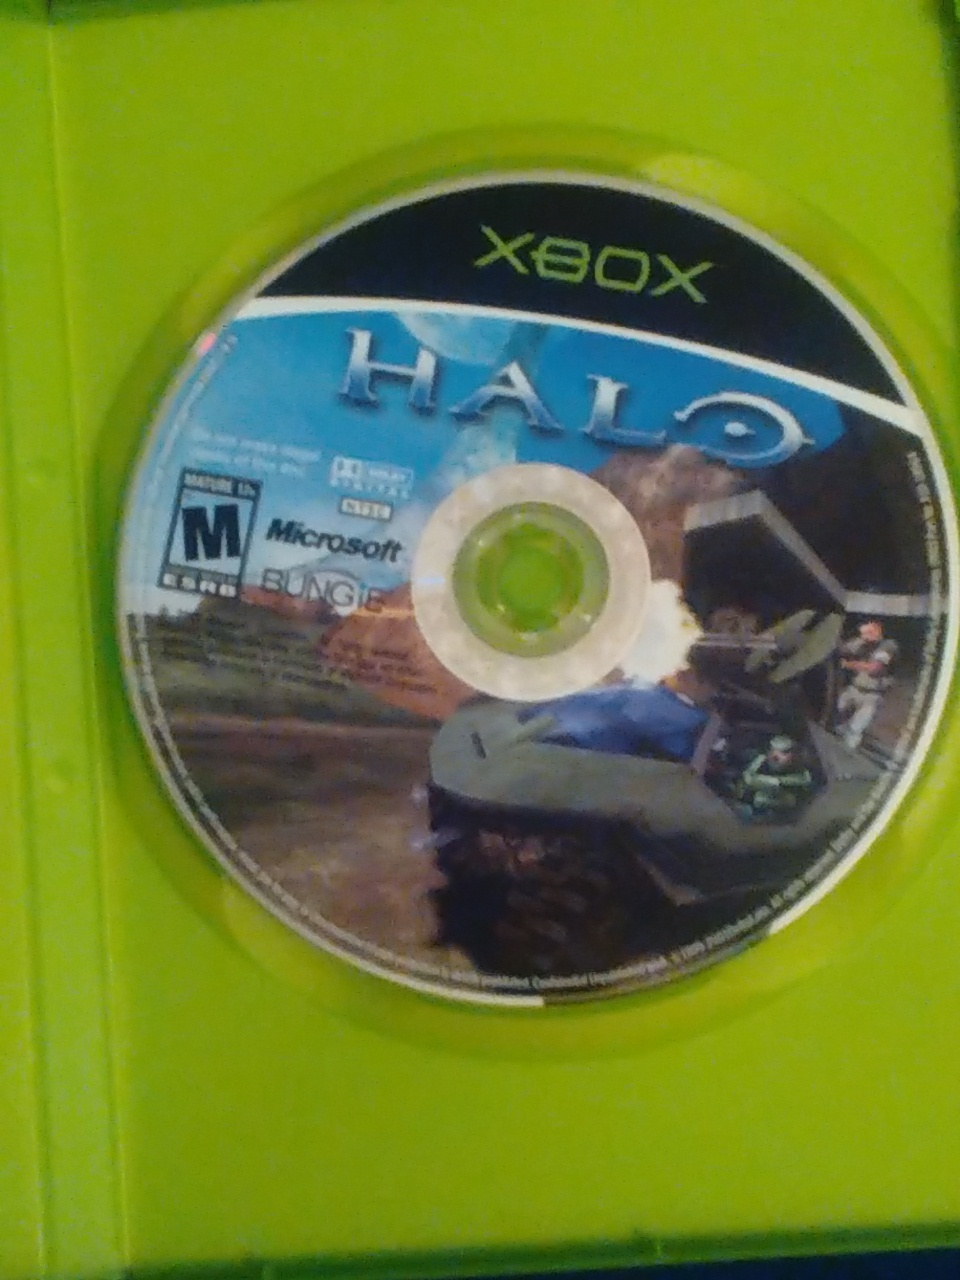 Halo Combat Evolved Xbox image 2